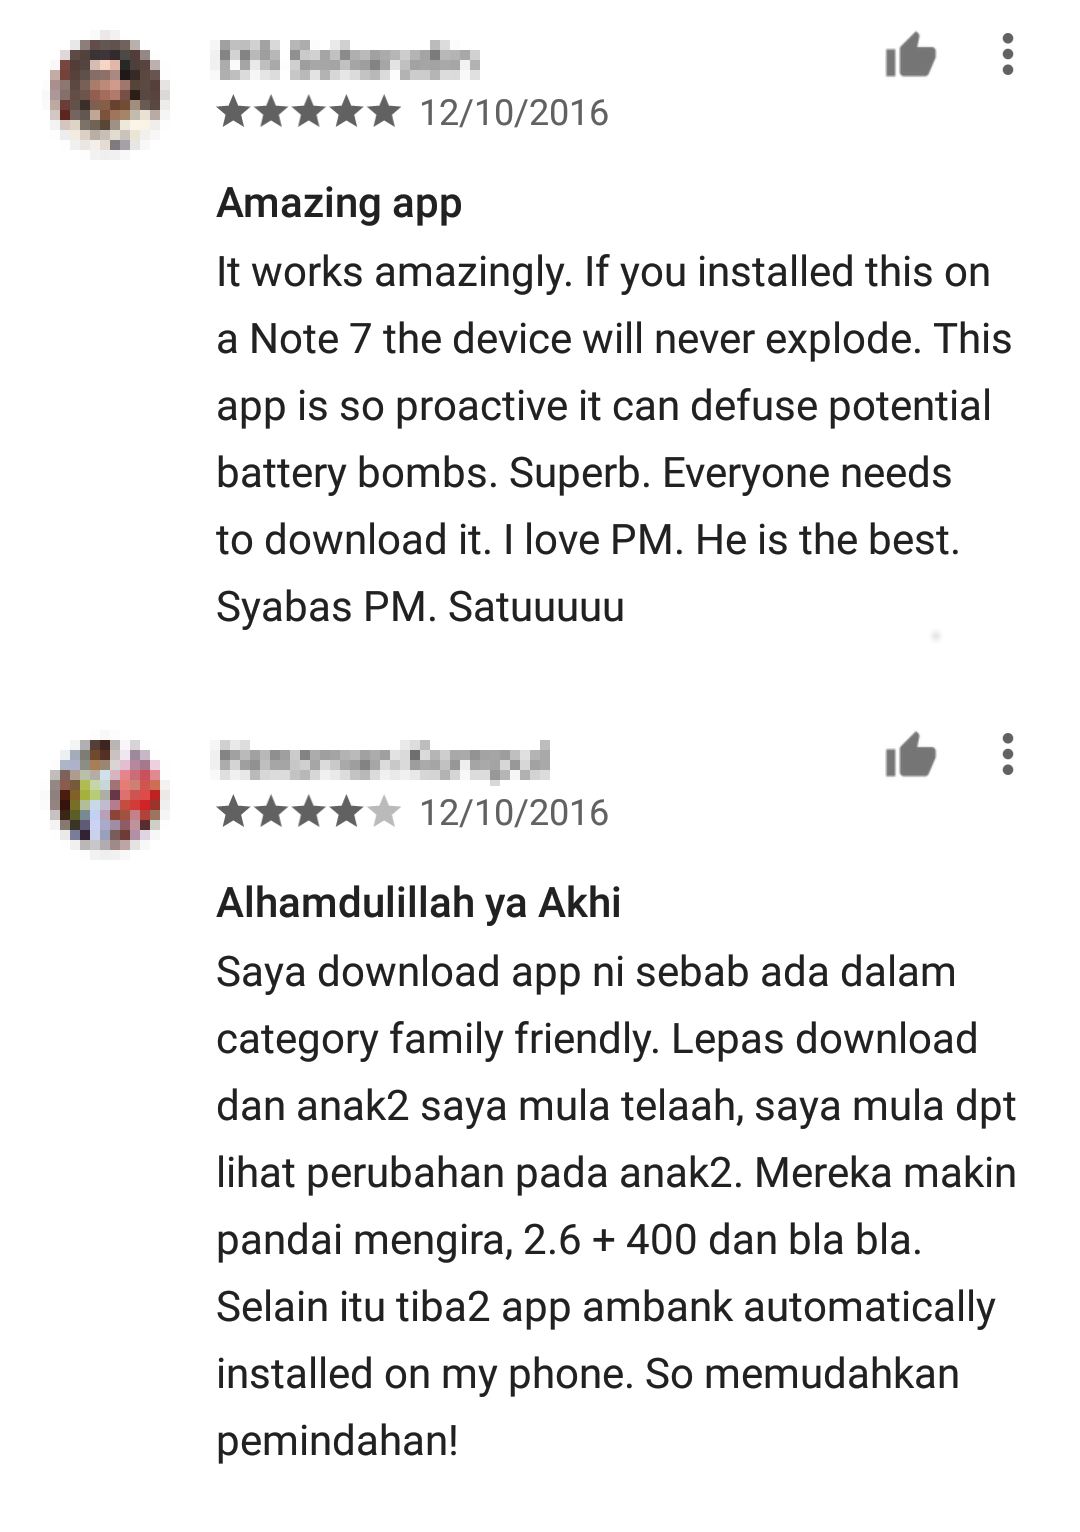 Image from Google Play Store